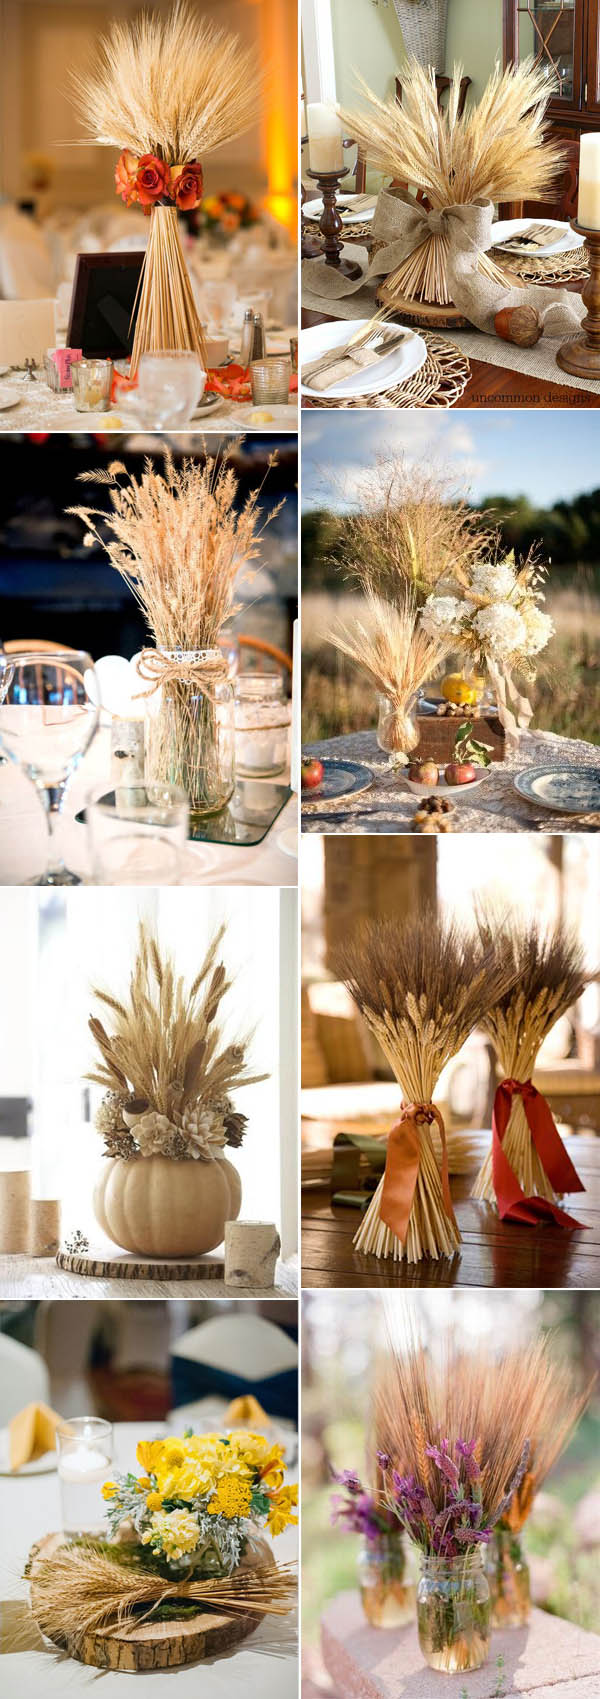 rustic-wheat-autumn-wedding-centerpieces-inspiration